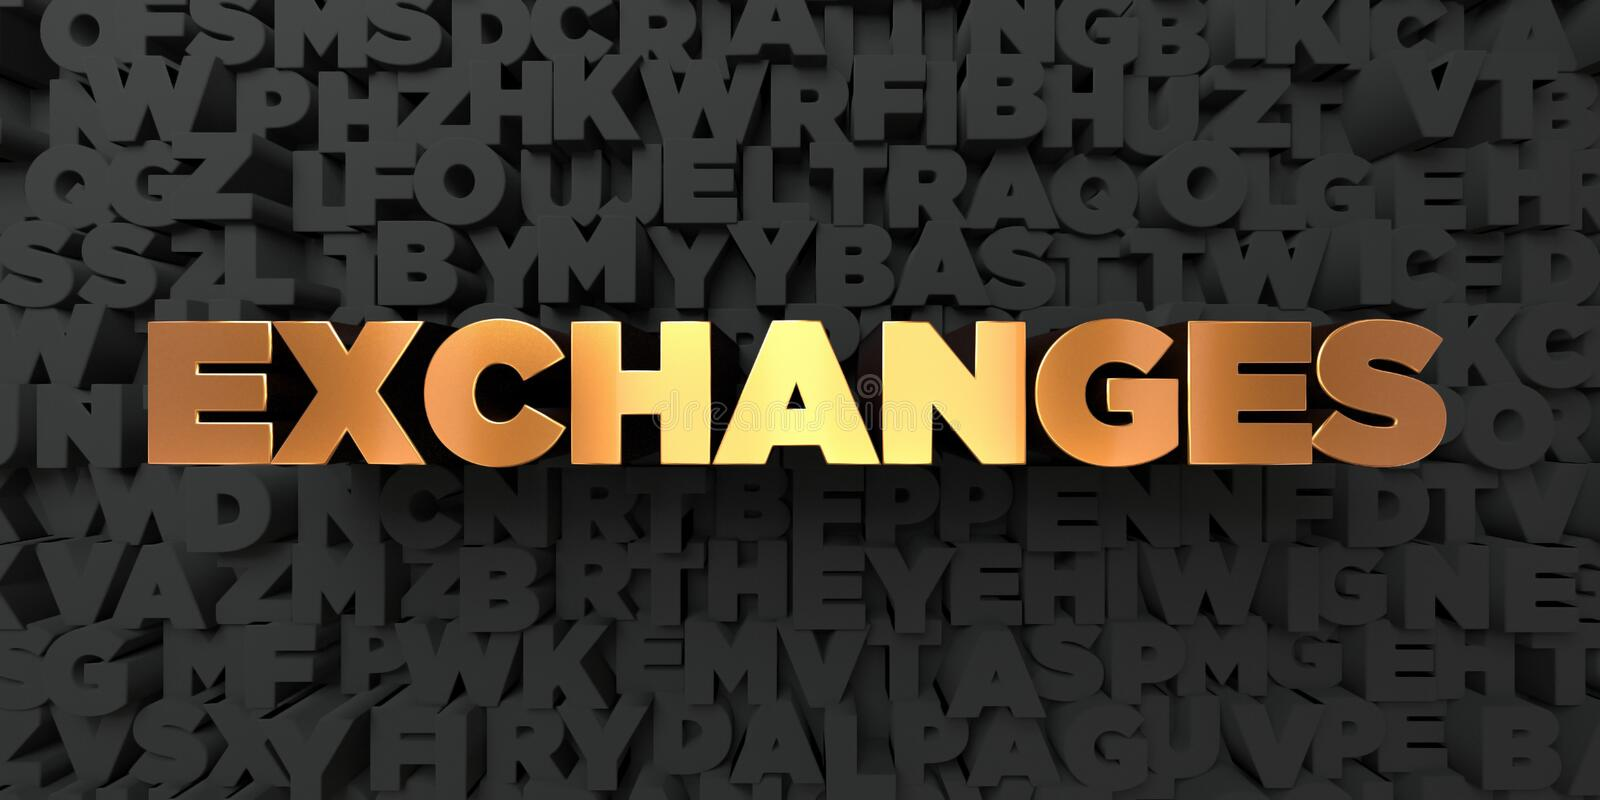 Exchanges - Gold text on black background - 3D rendered royalty free stock picture. This image can be used for an online website banner ad or a print postcard vector illustration